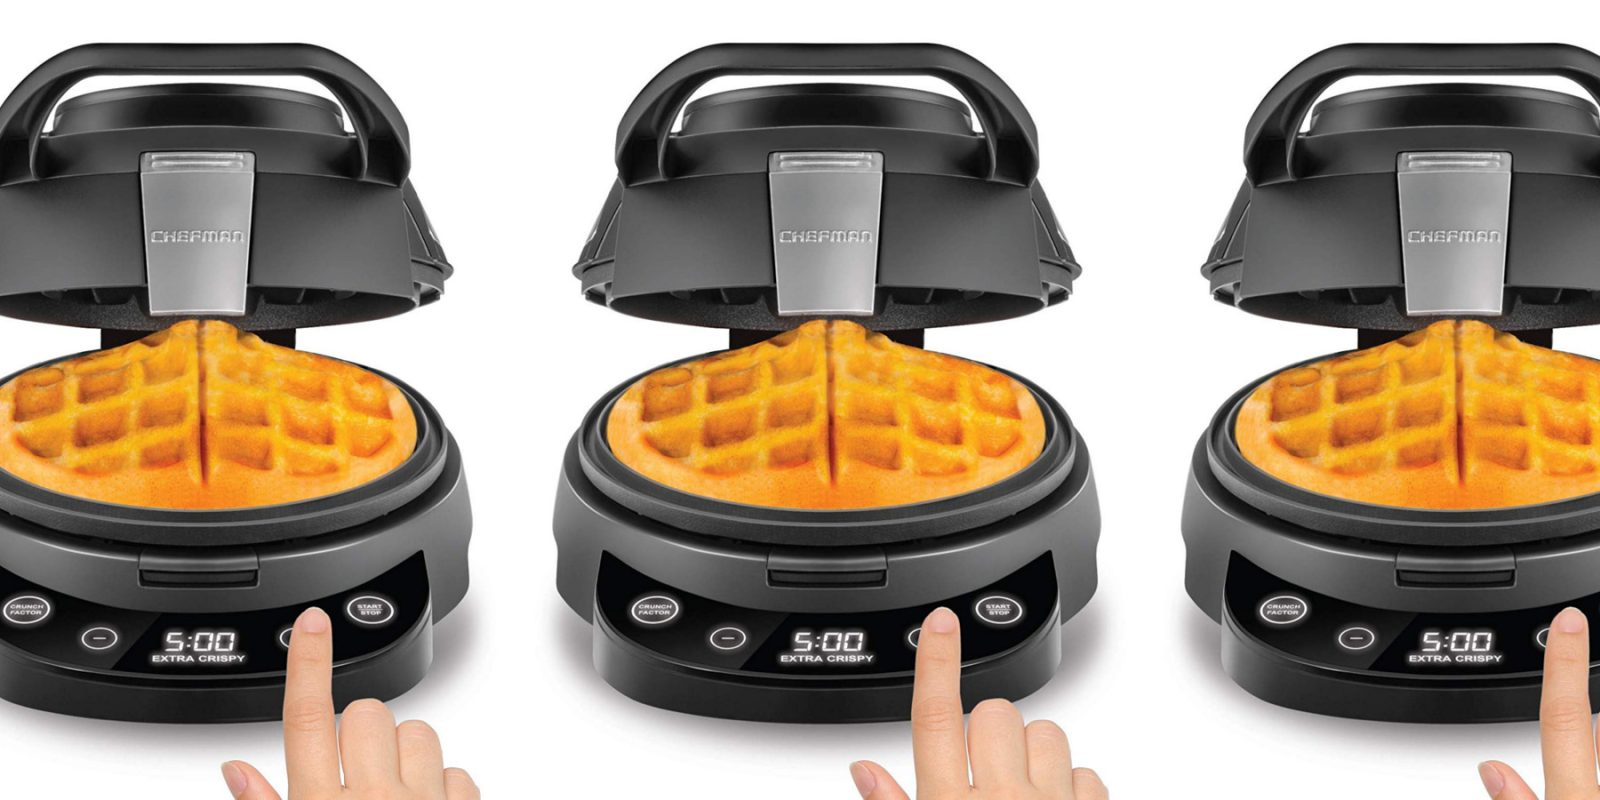 Chefman's Volcano Waffle Maker at one of its best prices: $20 (Reg. up to $50)